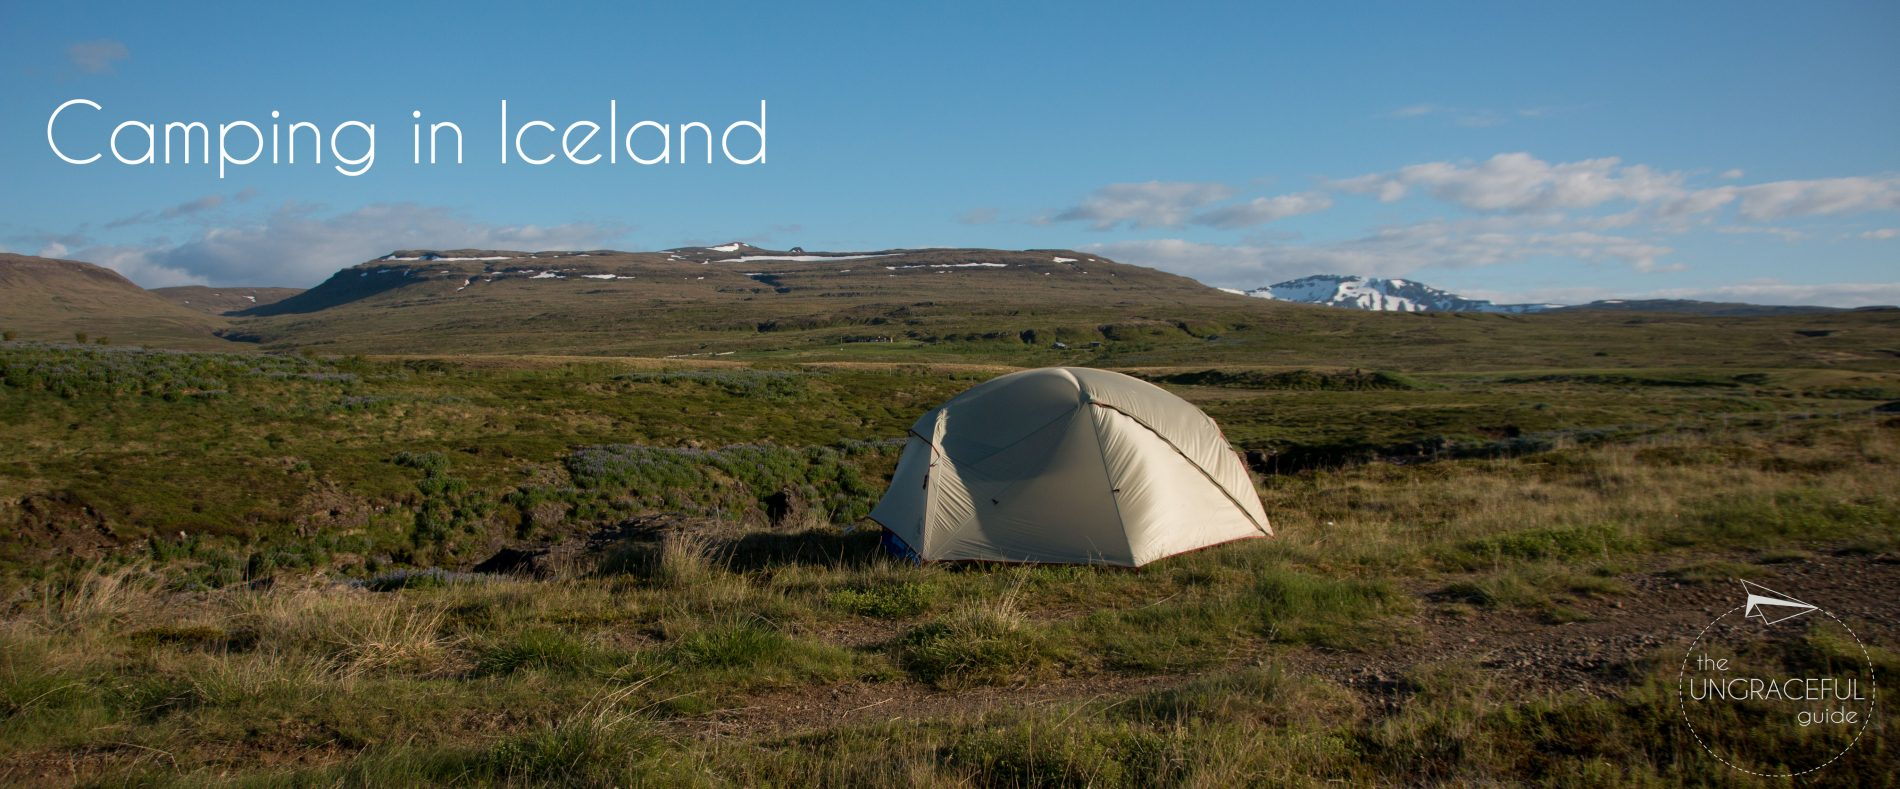 """<img src=""""images/"""" width=""""800"""" height=""""600"""" alt=""""iceland - camping - Iceland: How to get the most on a budget"""">"""